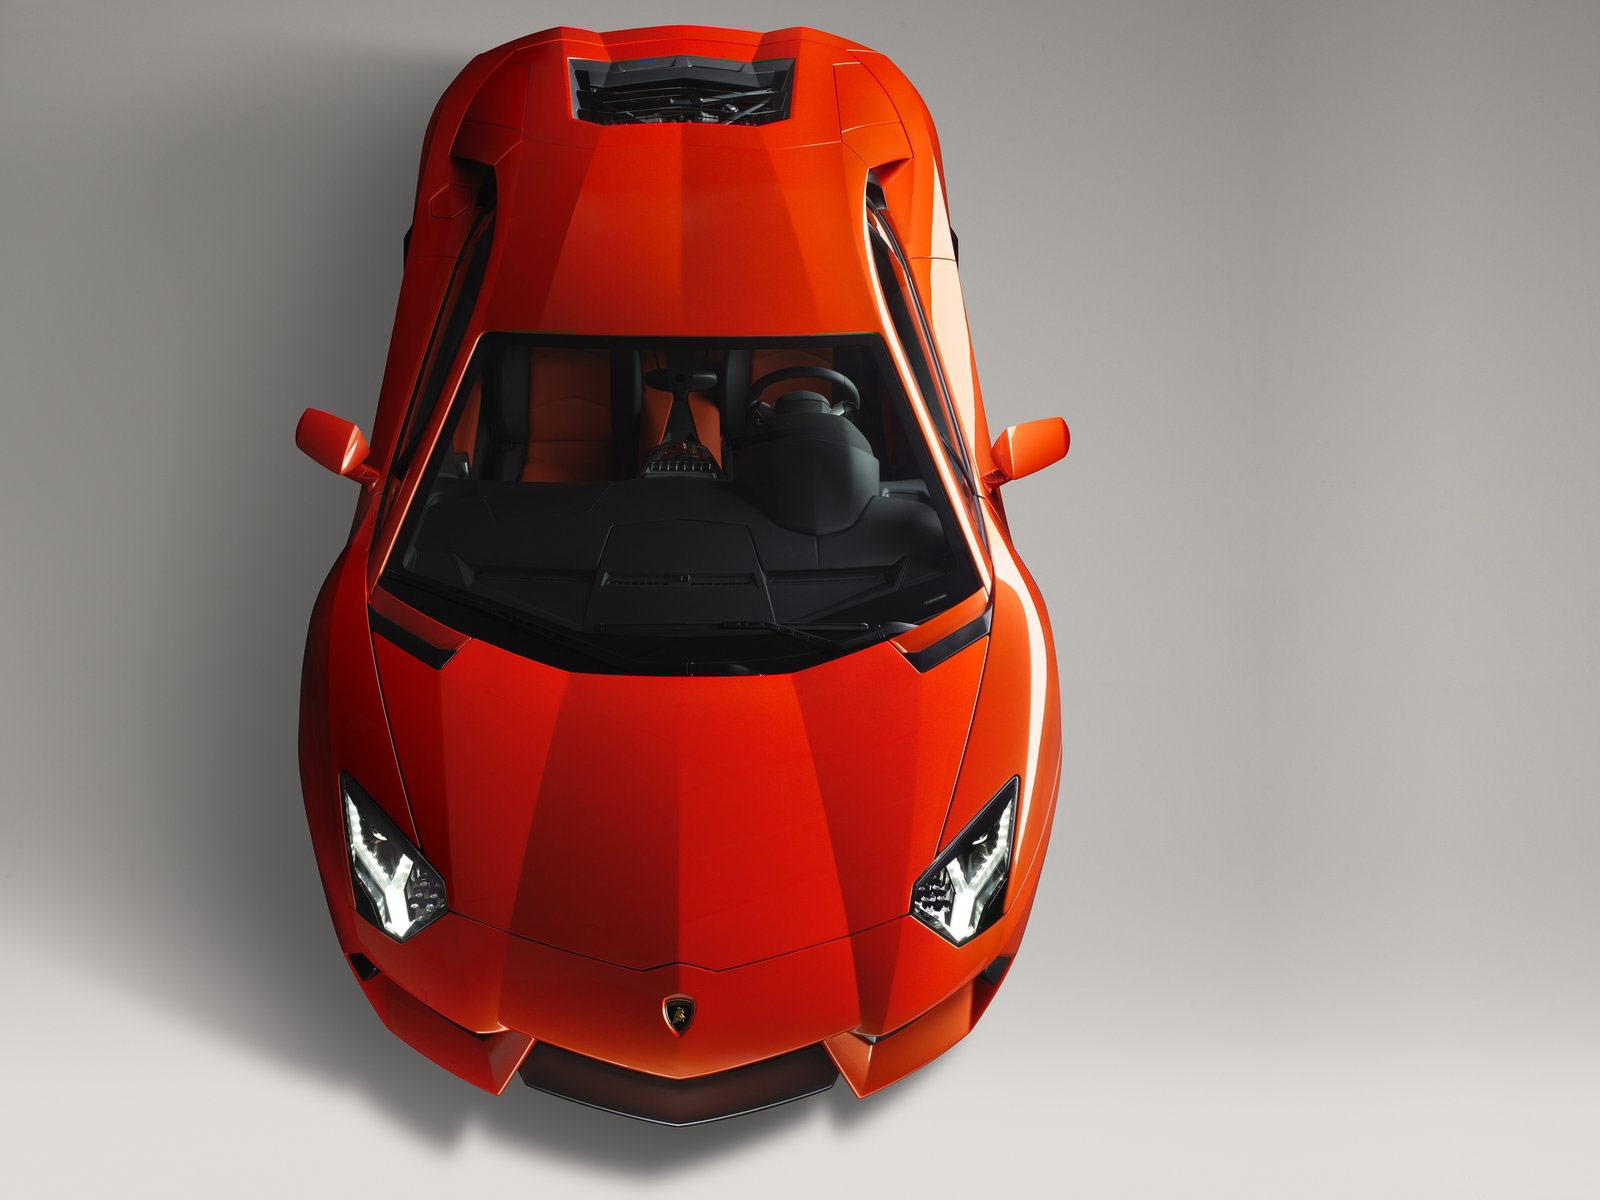 huracan comprehensive helps in cars front motion quarter insurance protection list lamborghini for top three car xti